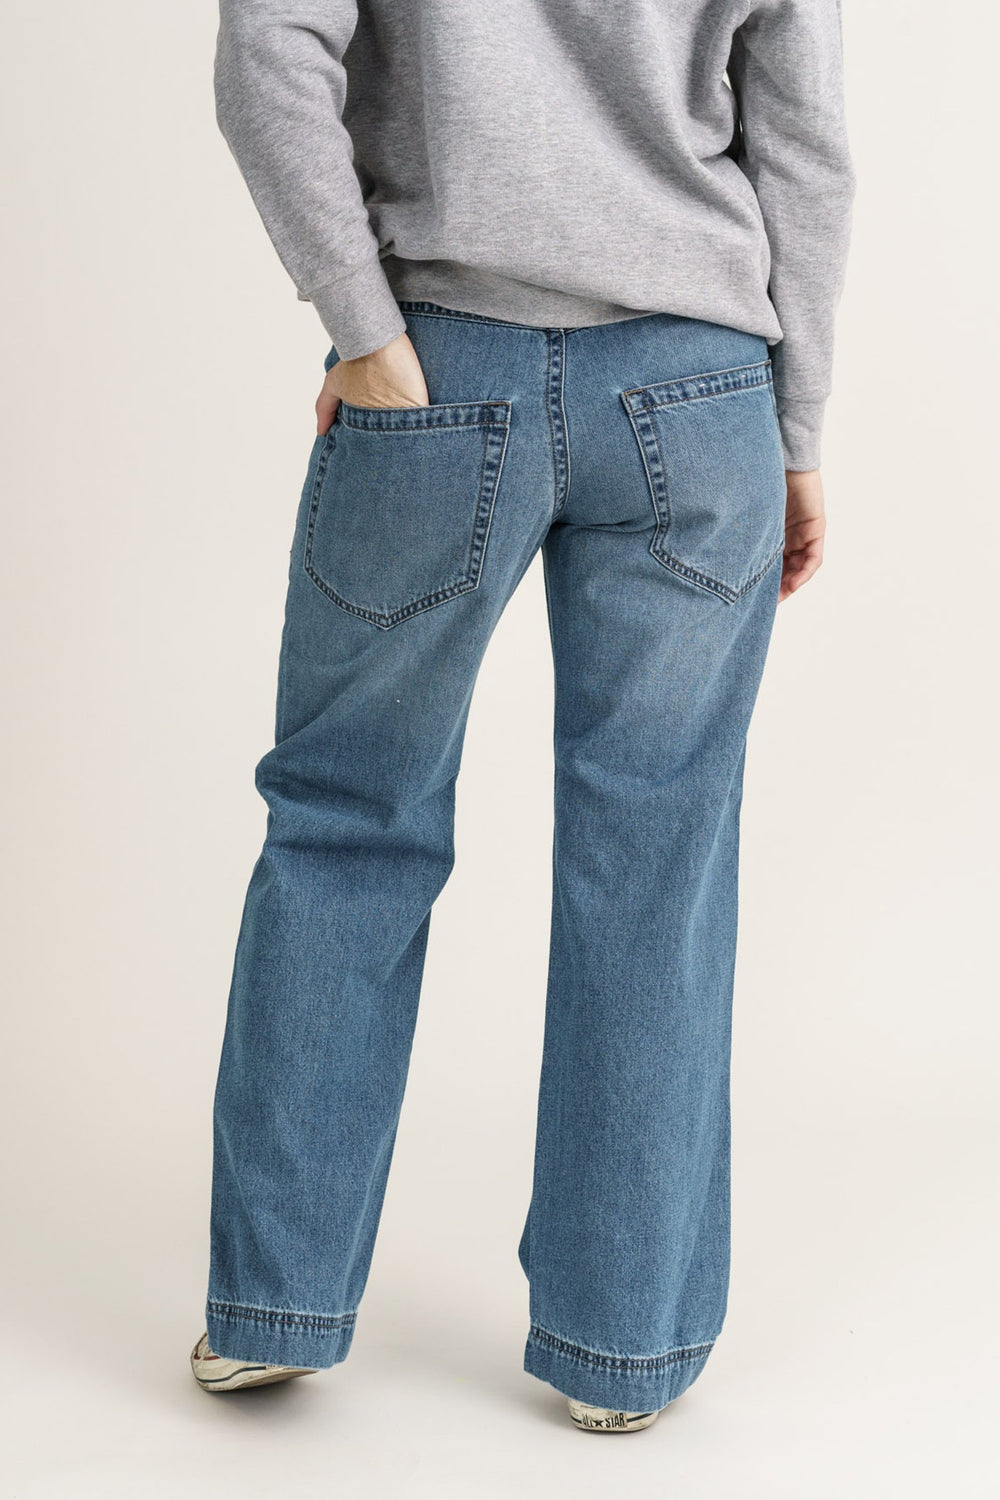 Light Vintage Slouch Jean Loose Fit Organic Denim - Monkee Genes Organic Jeans Denim - Women's Wide Fit Monkee Genes Official  Monkee Genes Official